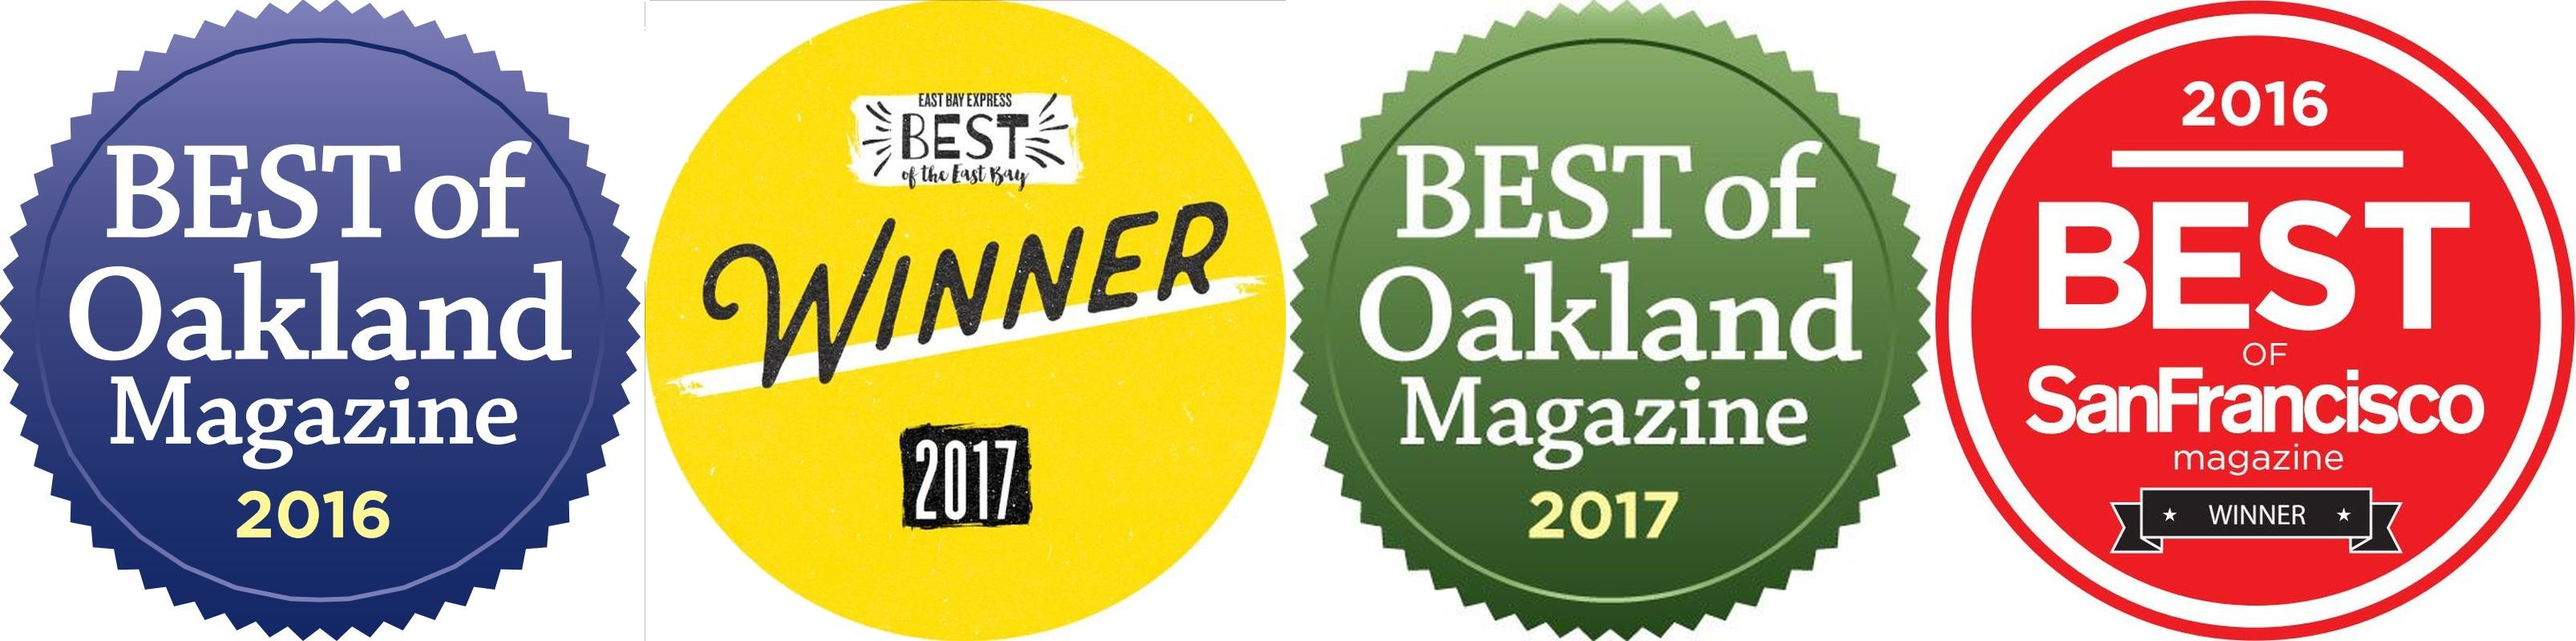 oakland magazine best of 2019 Store Locations